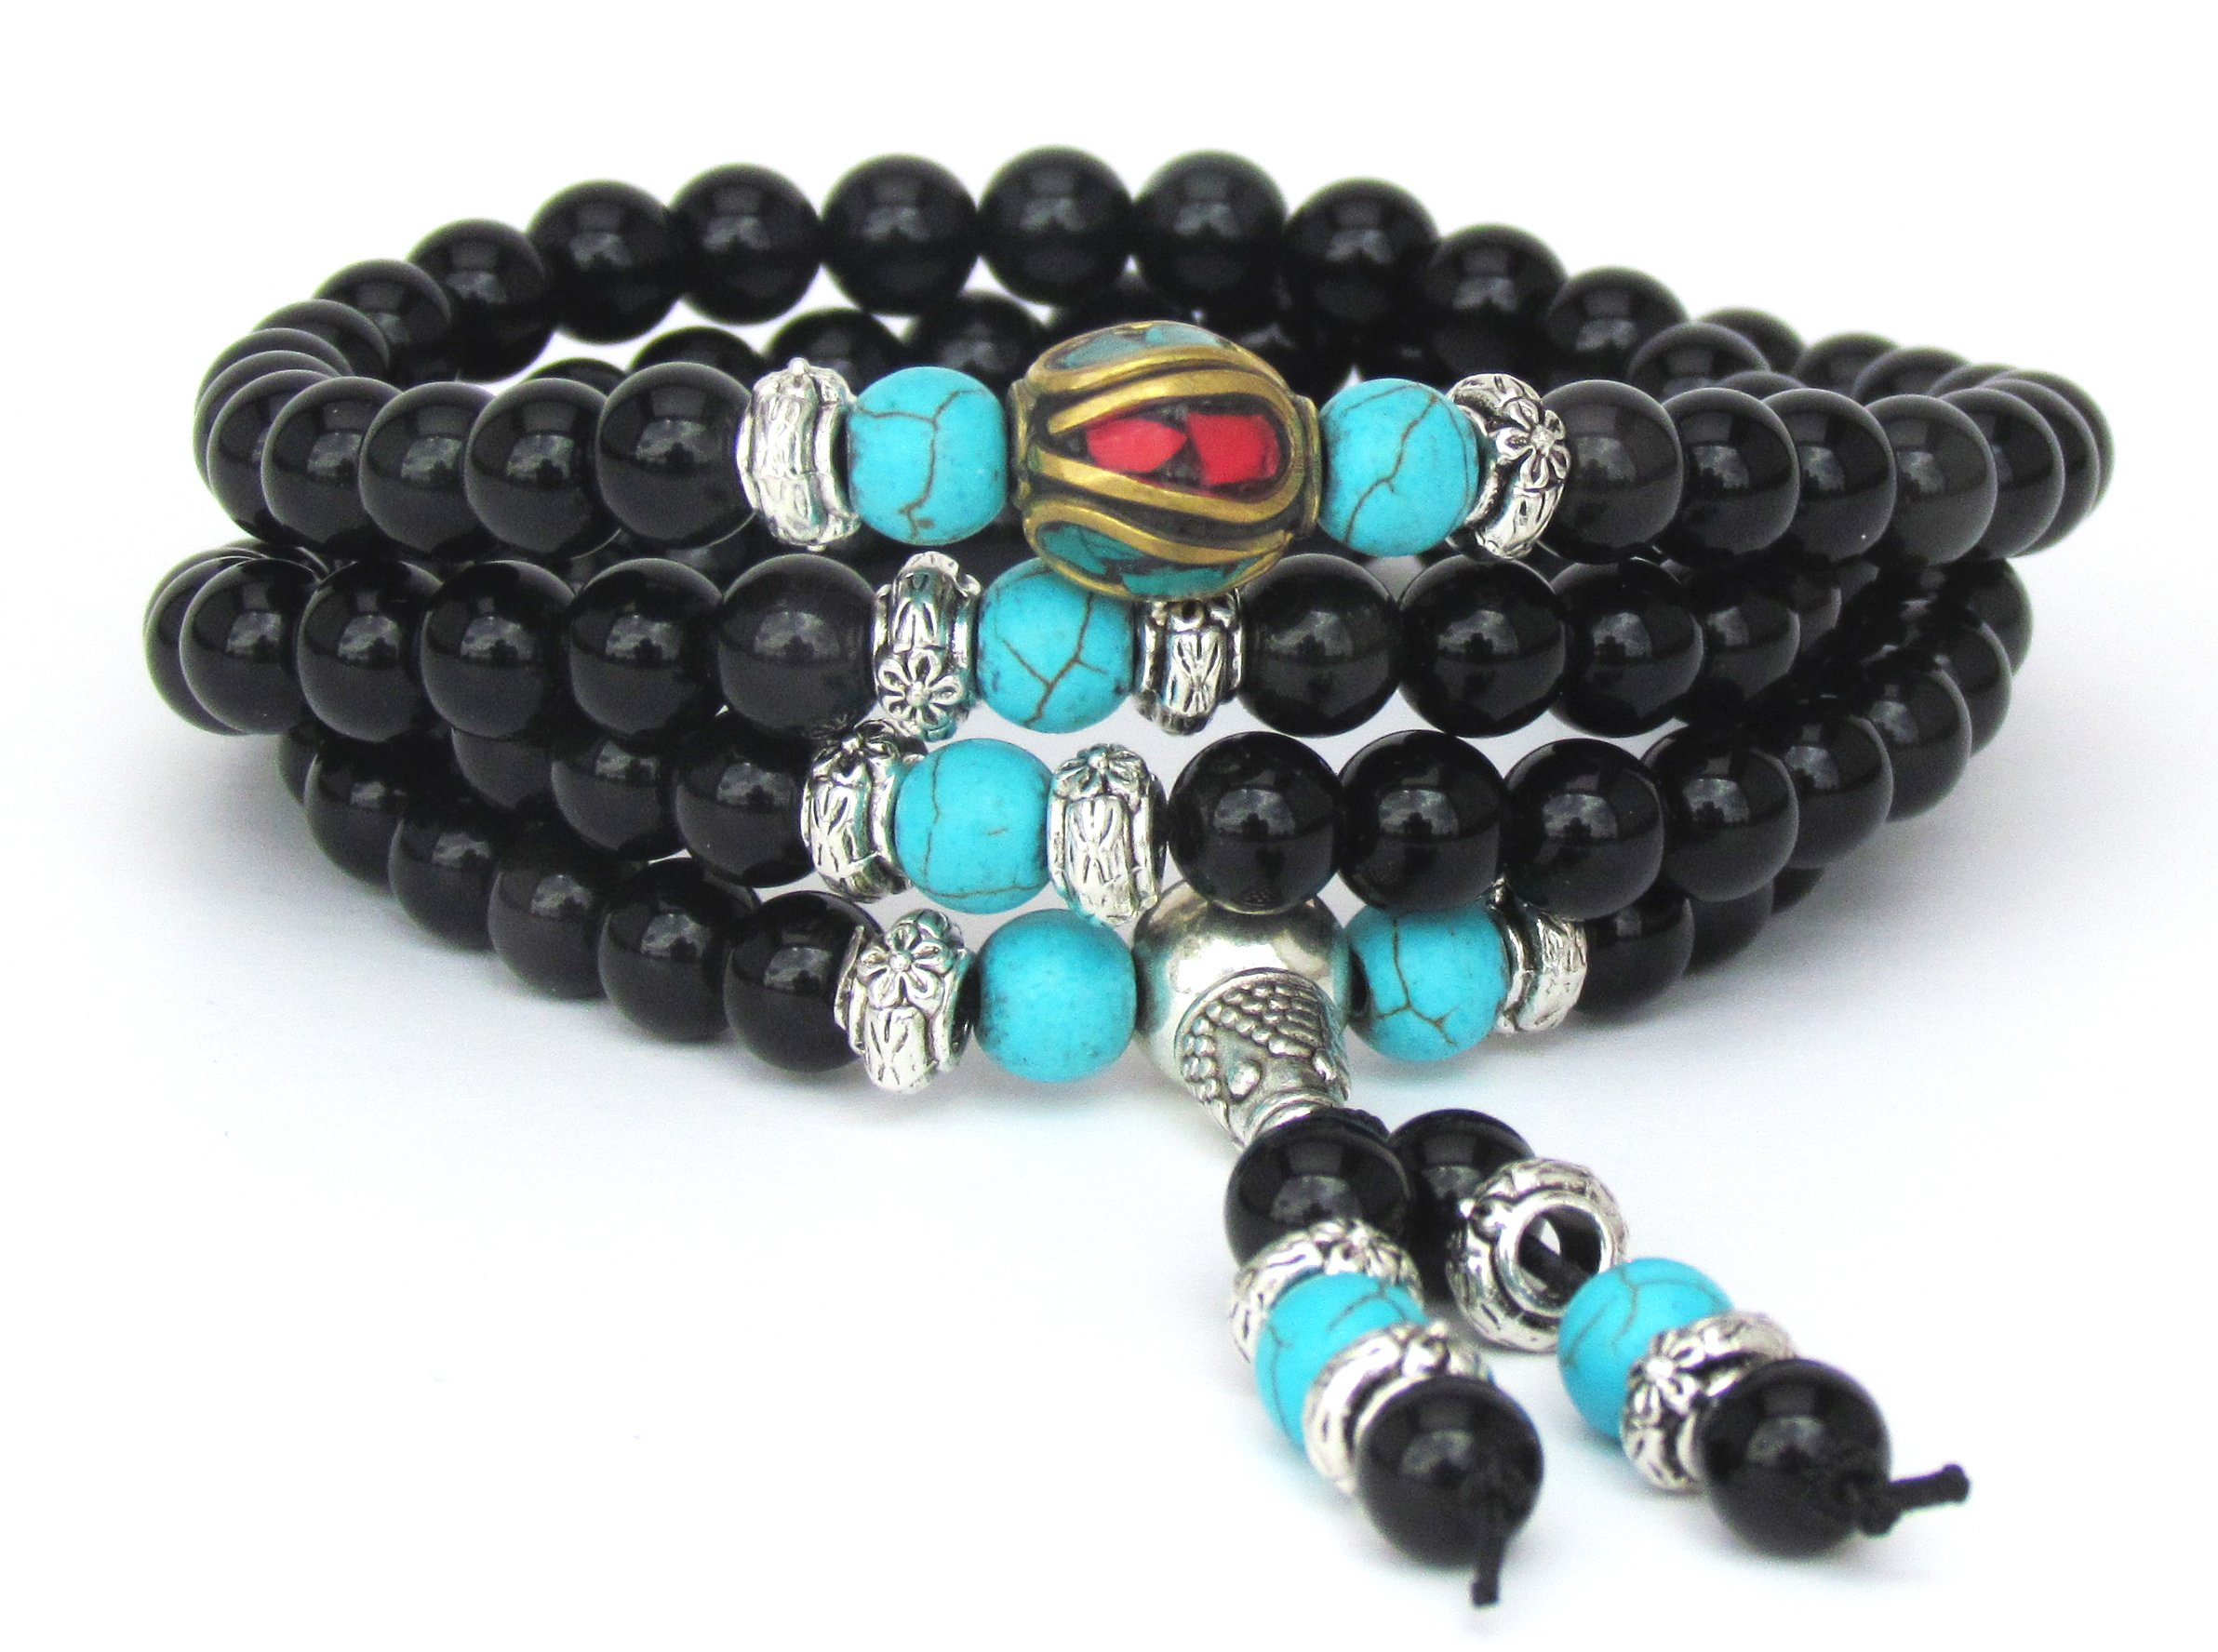 Mala Beads Multilayer Stretch Bracelet, Black Obsidian Blue Turquoise Buddhist Prayer Beads, Unique Gift